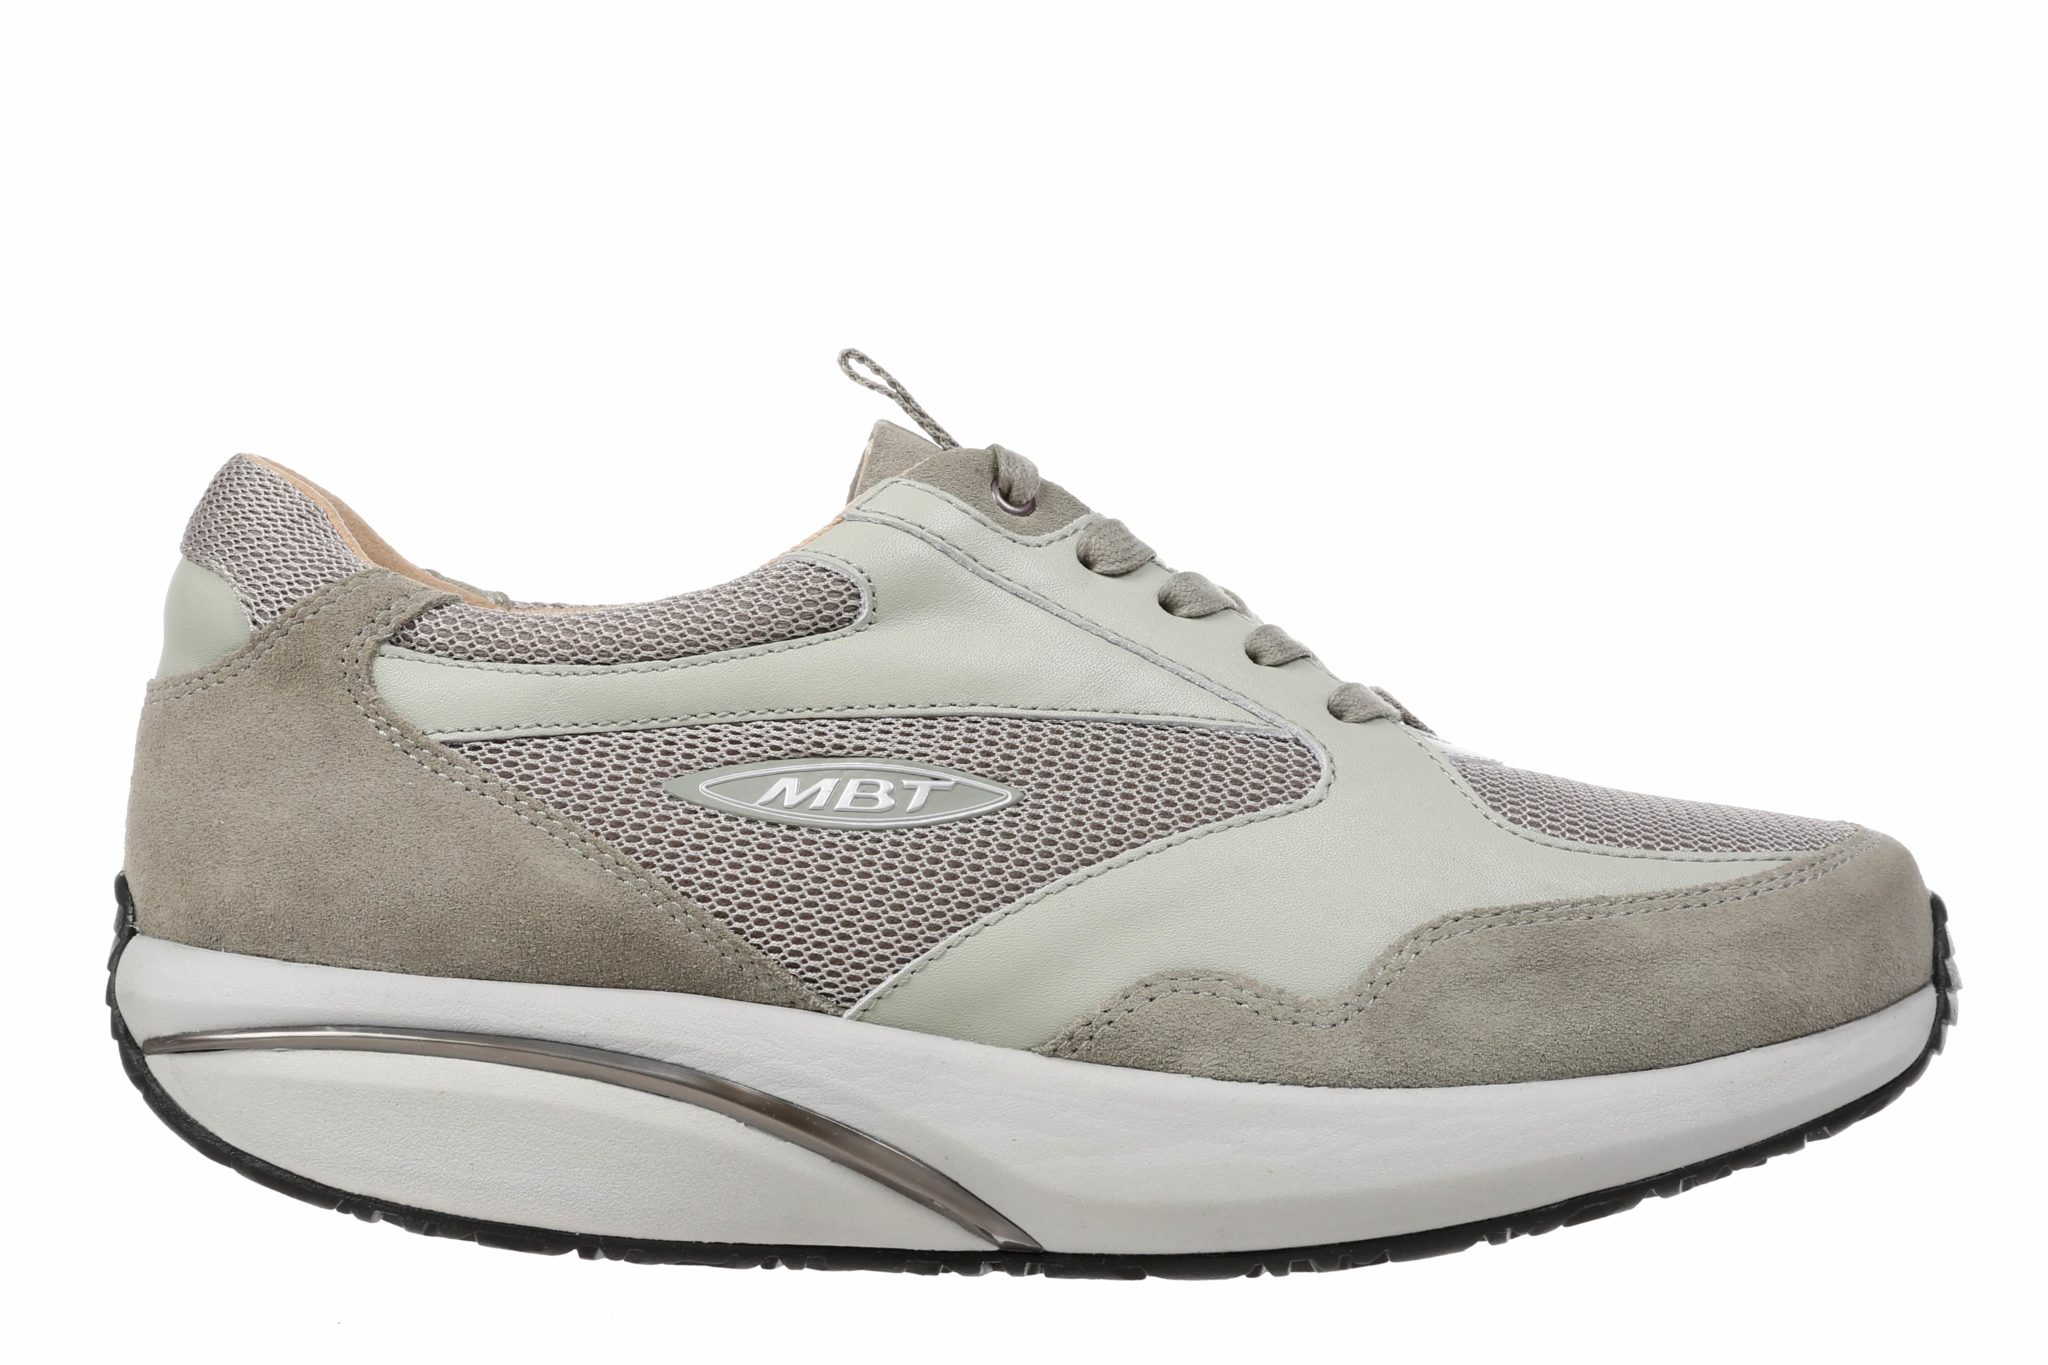 MBT UOMO SINI LUX M LT STONE GREY STONE GRAY 700959 1294D LATERAL min